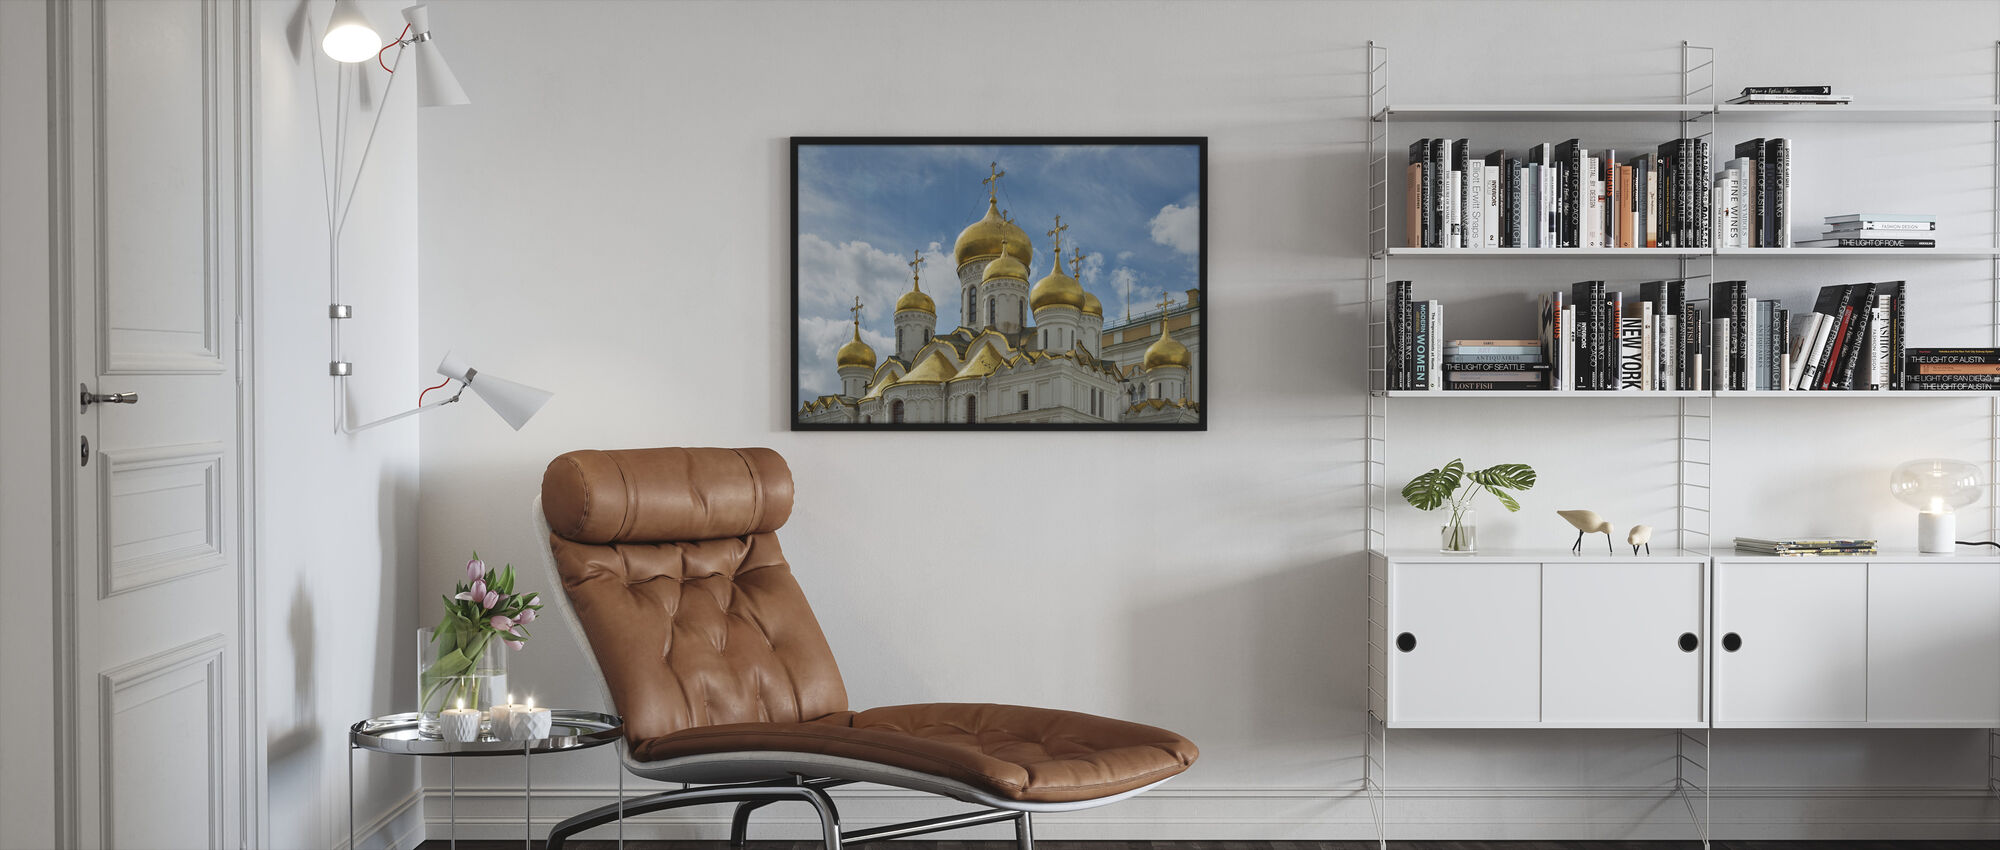 The Cathedral of the Annunciation - Framed print - Living Room